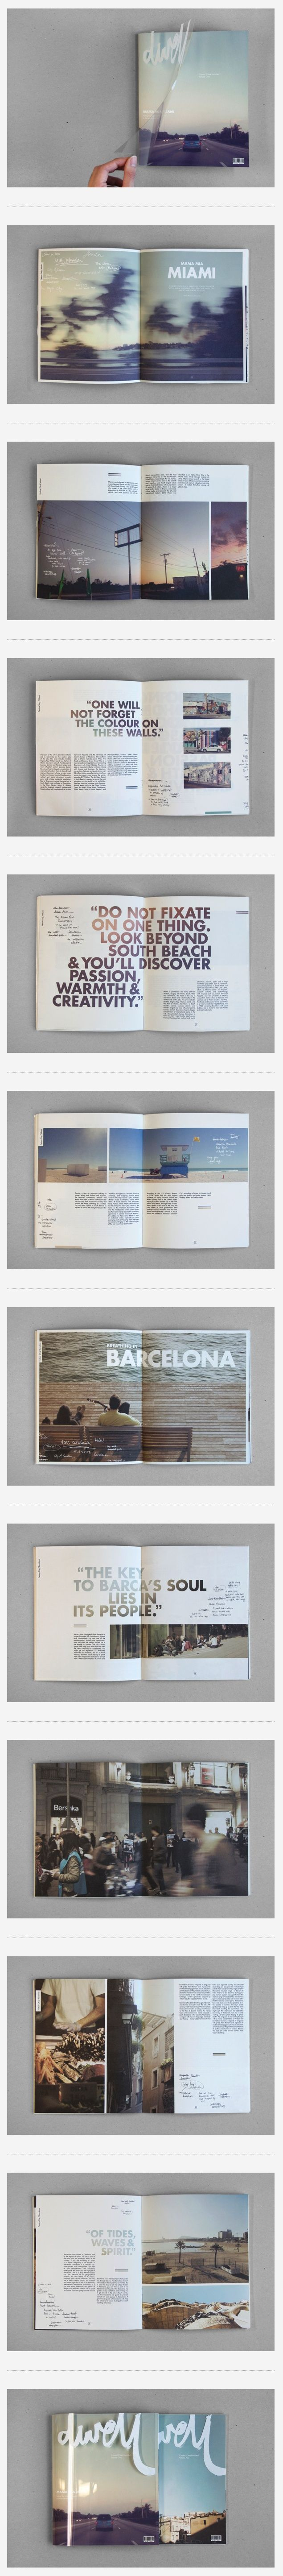 Magazine page layouts